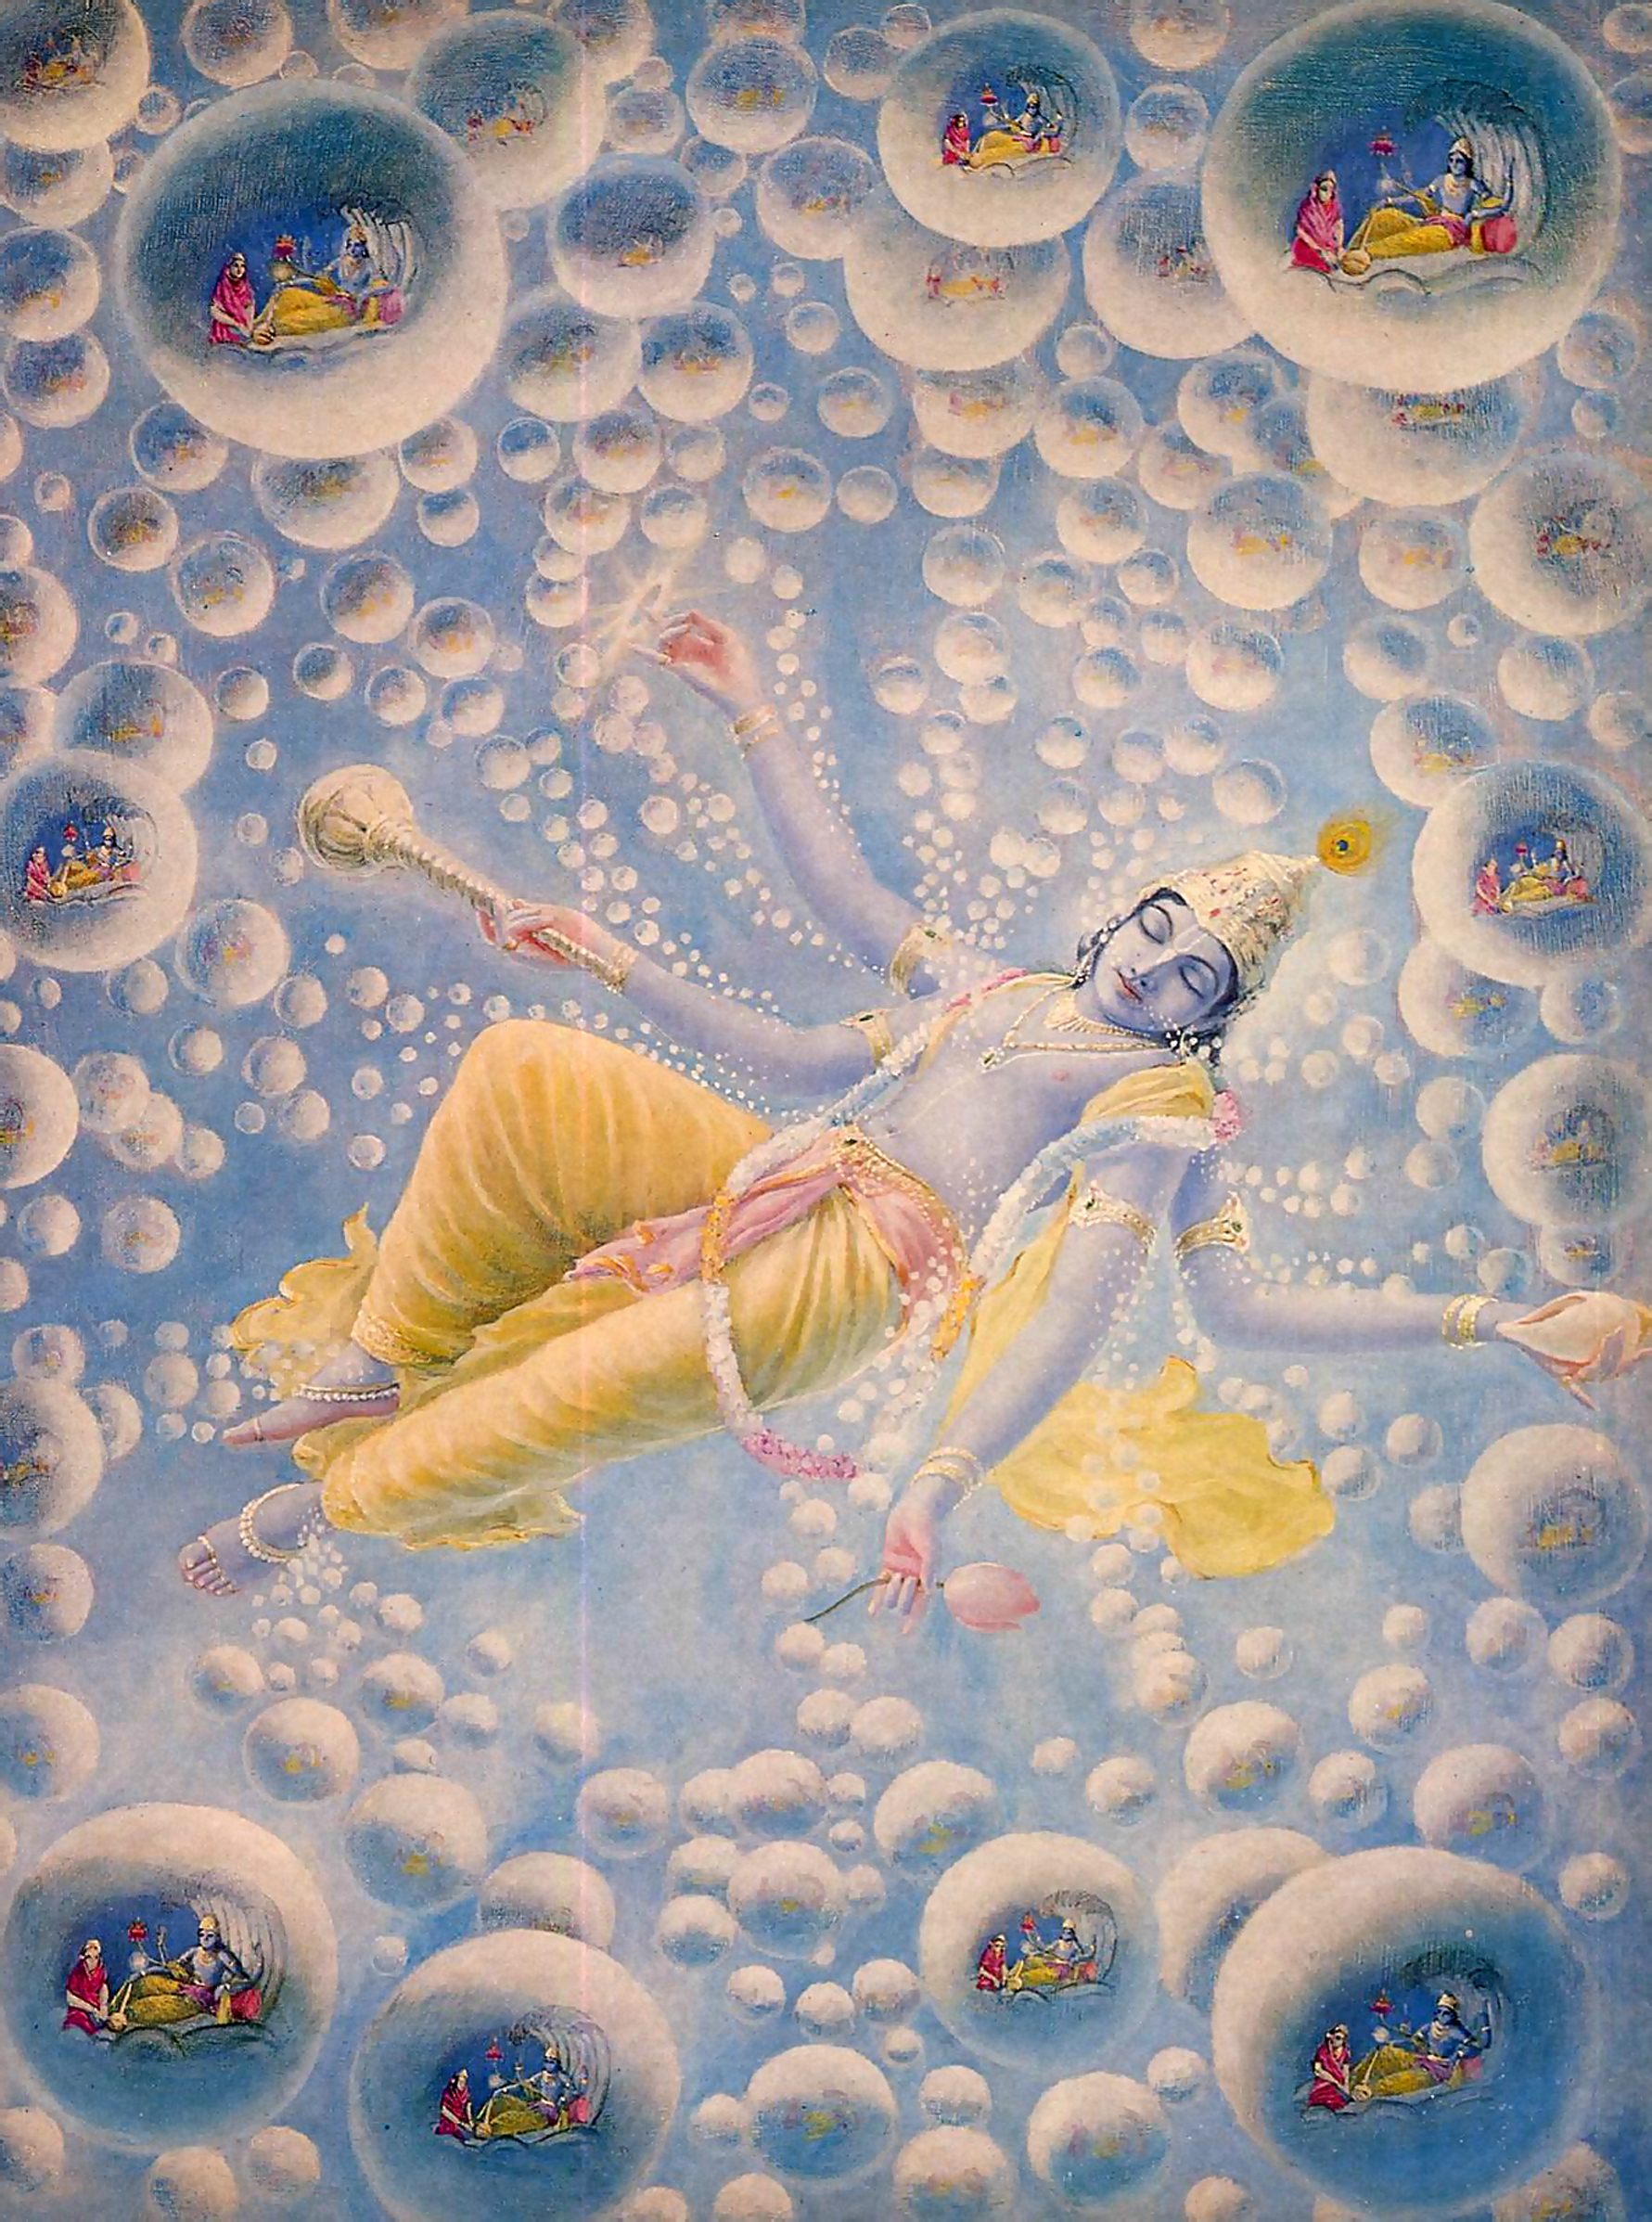 This is a complex image. I have not determined its exact origins. It appears to depict a version of Vishnu/Krishna, which exists beyond space and time, sleeping and dreaming…surrounded by bubble universes, each depicting a similar scene of Krishna (presumably), in manifest form, communing with another figure from Hindu scripture.